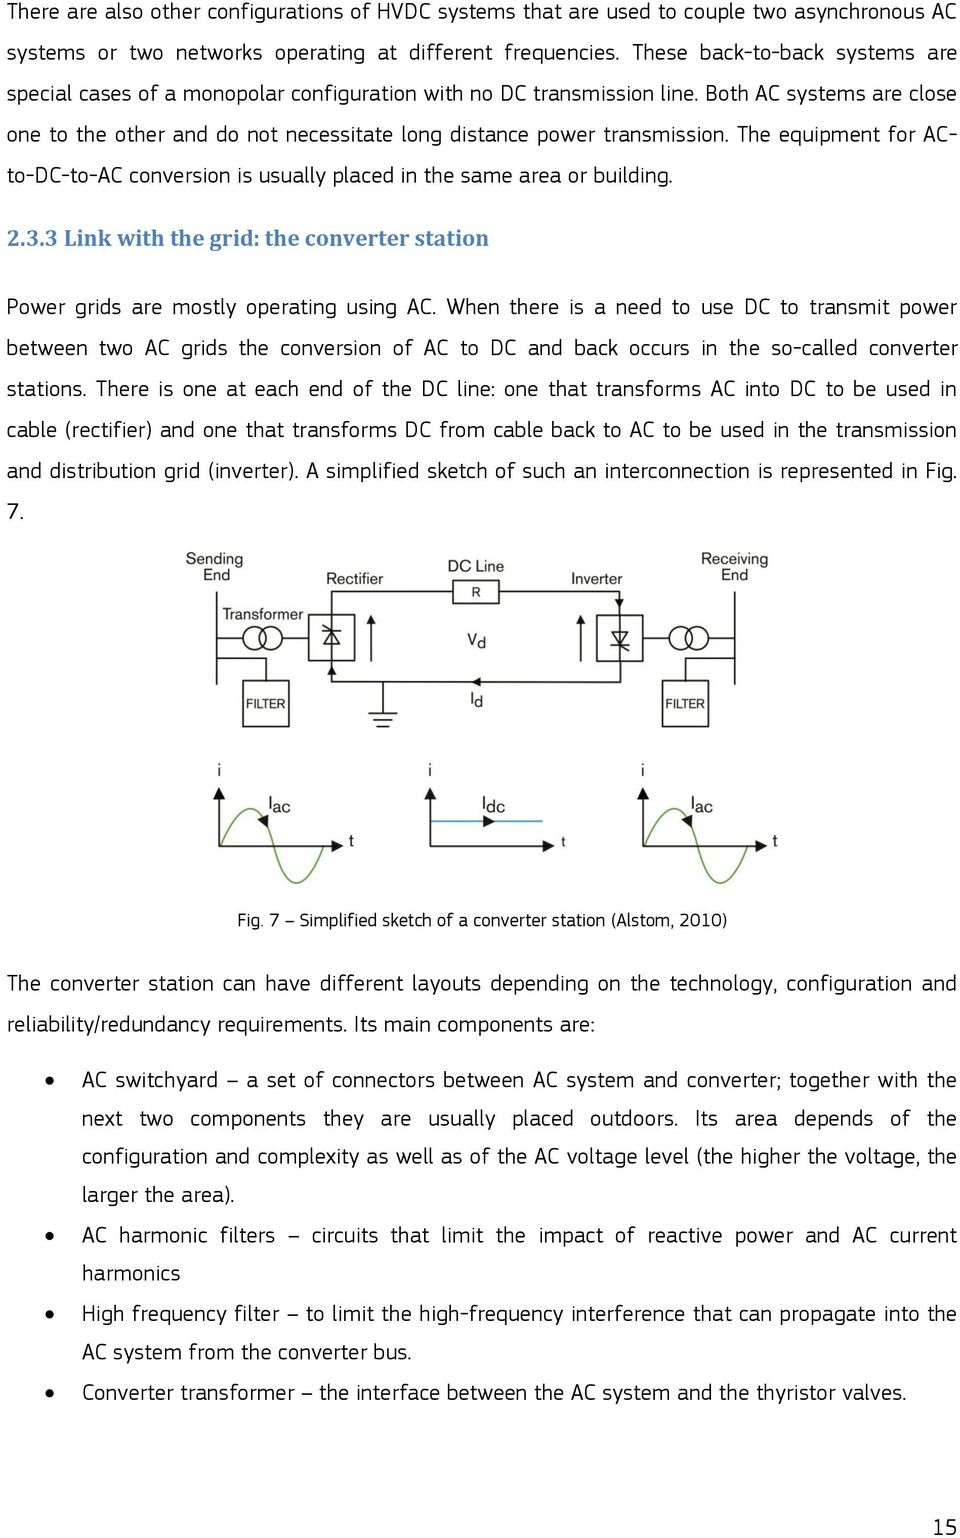 Hvdc Submarine Power Cables In The World Pdf Rectifier Circuit Is That It Expands Easily Into A Polyphase Version Both Ac Systems Are Close One To Other And Do Not Necessitate Long Distance